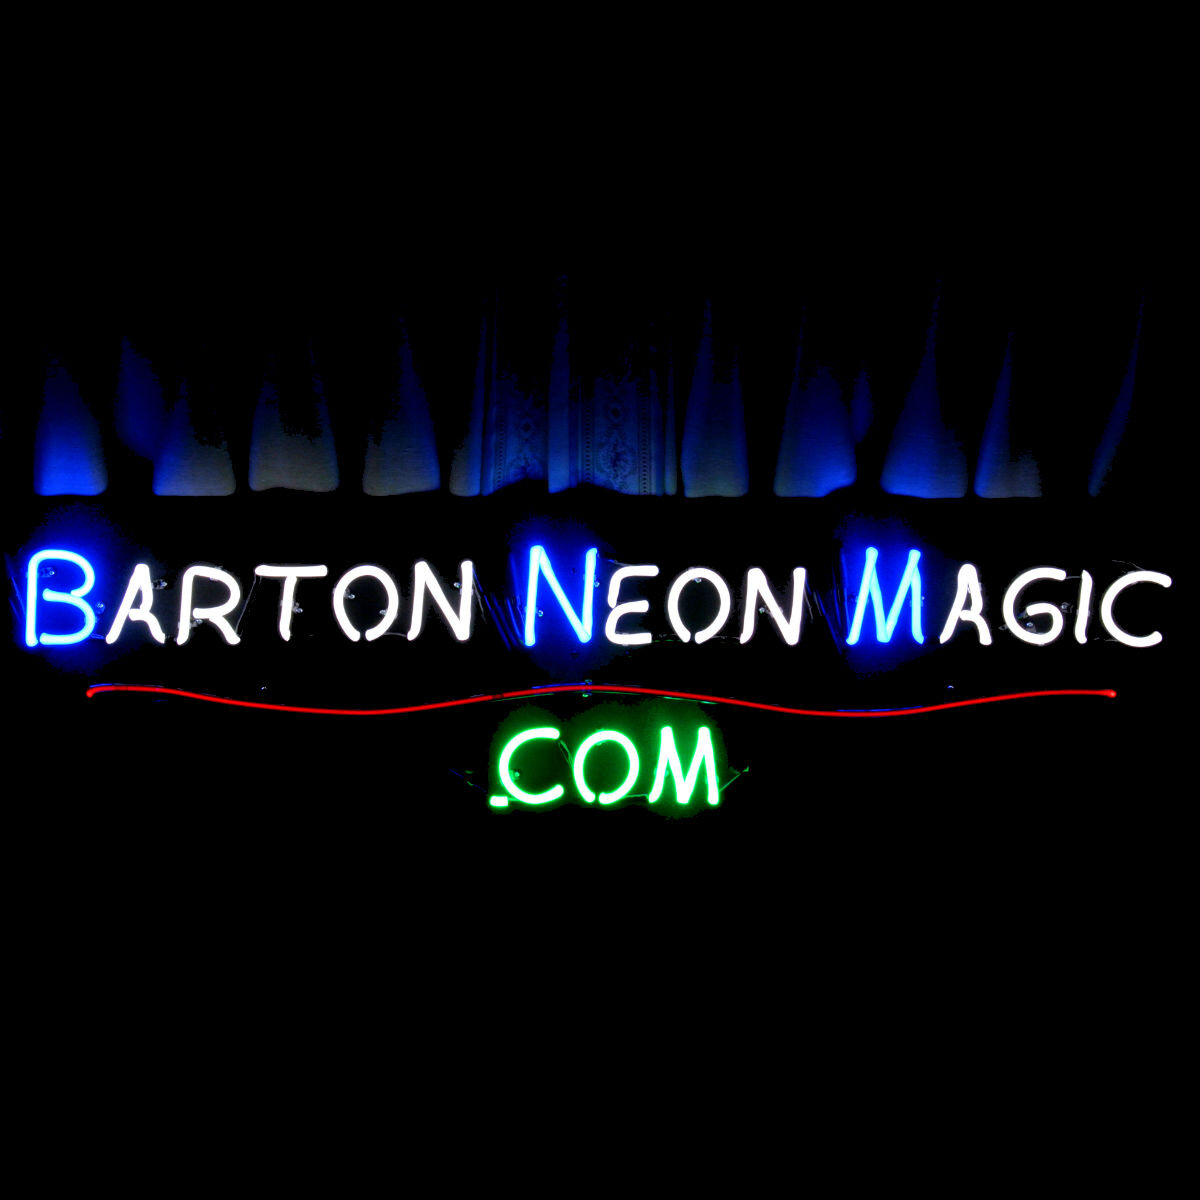 DESIGNER NEON LIGHT FIXTURES by John Barton - BartonNeonMagic.com